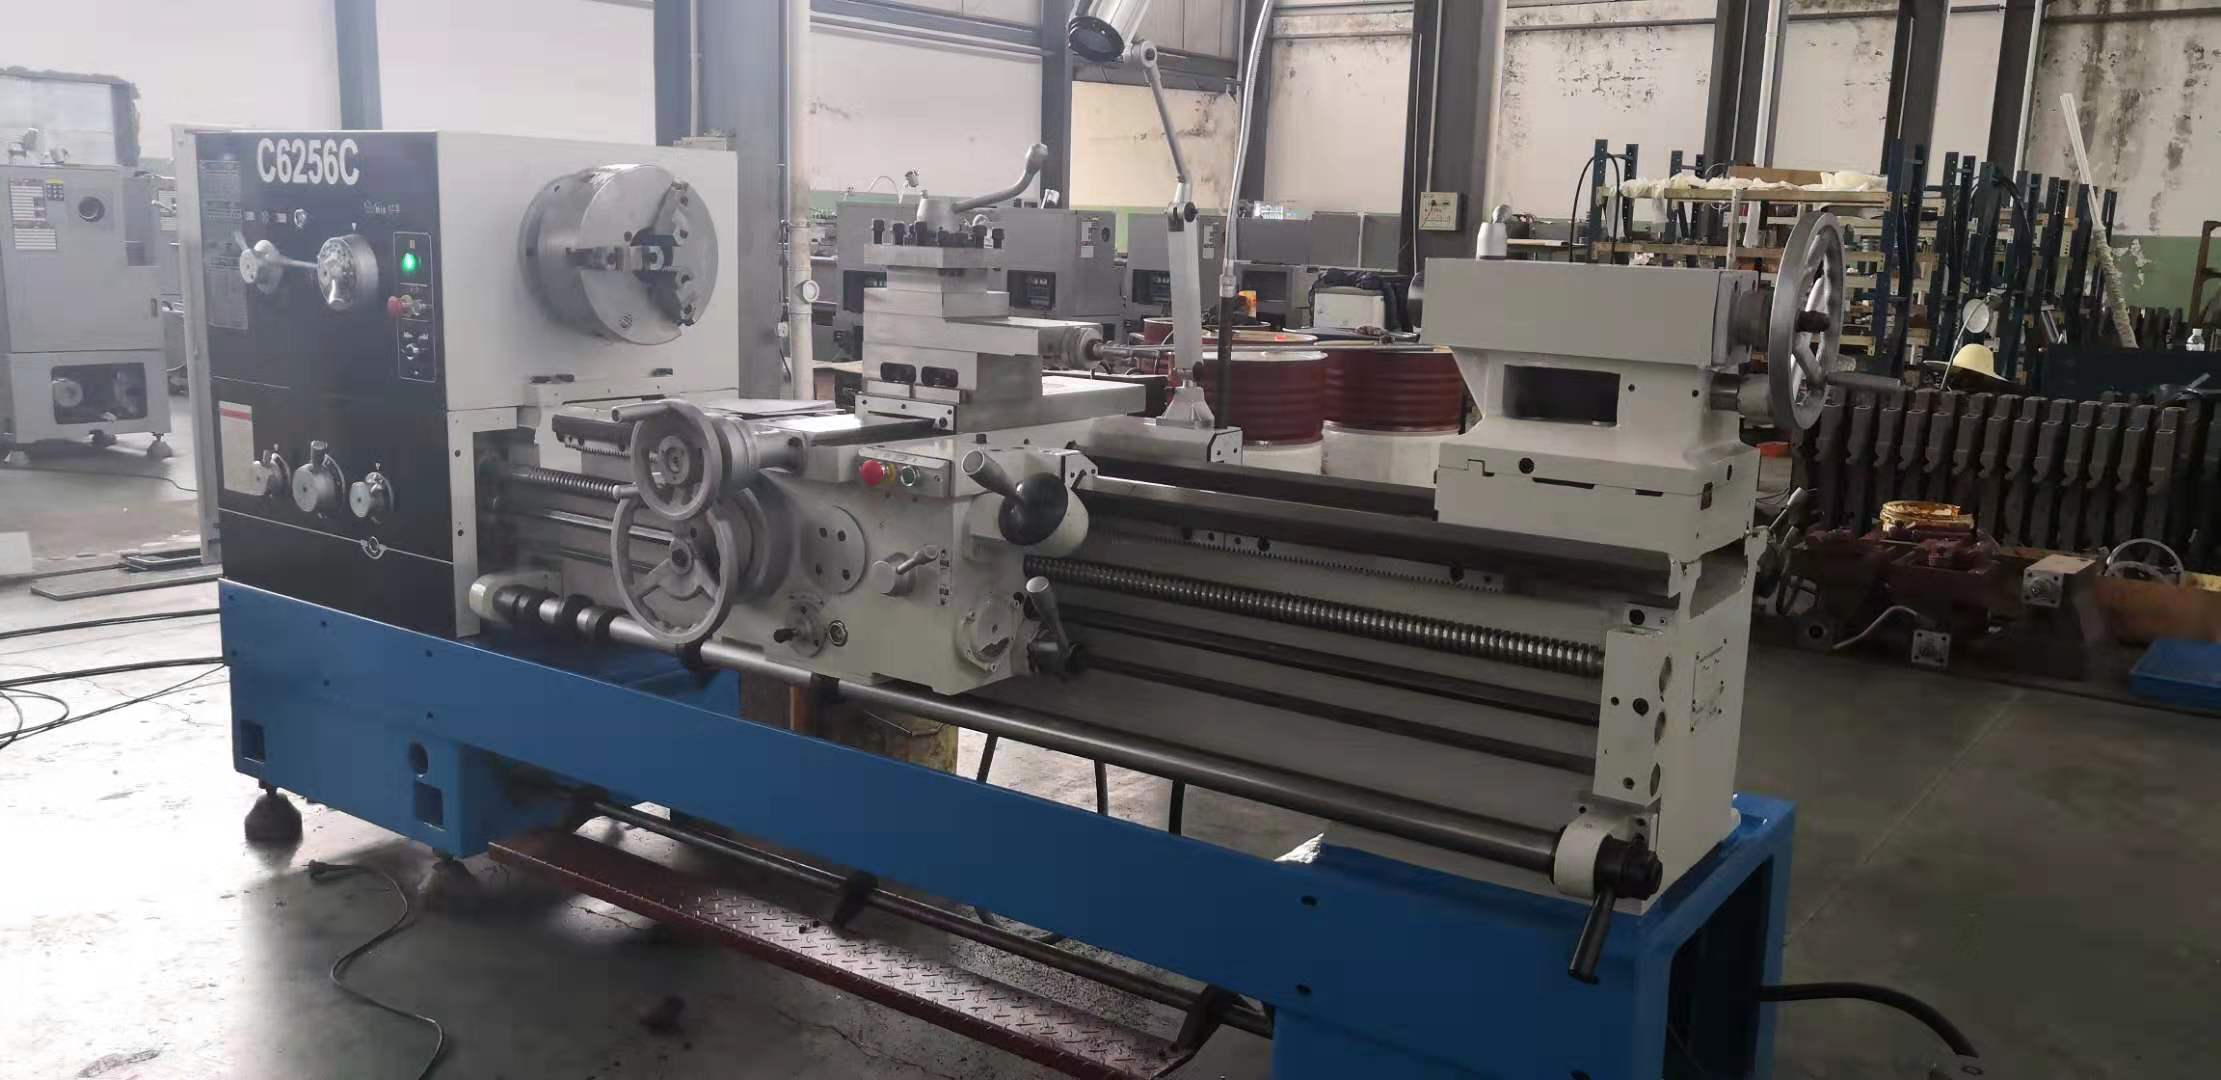 CONVENTIONAL LATHE C6256C BIG SPINDLE HOLE SERIES